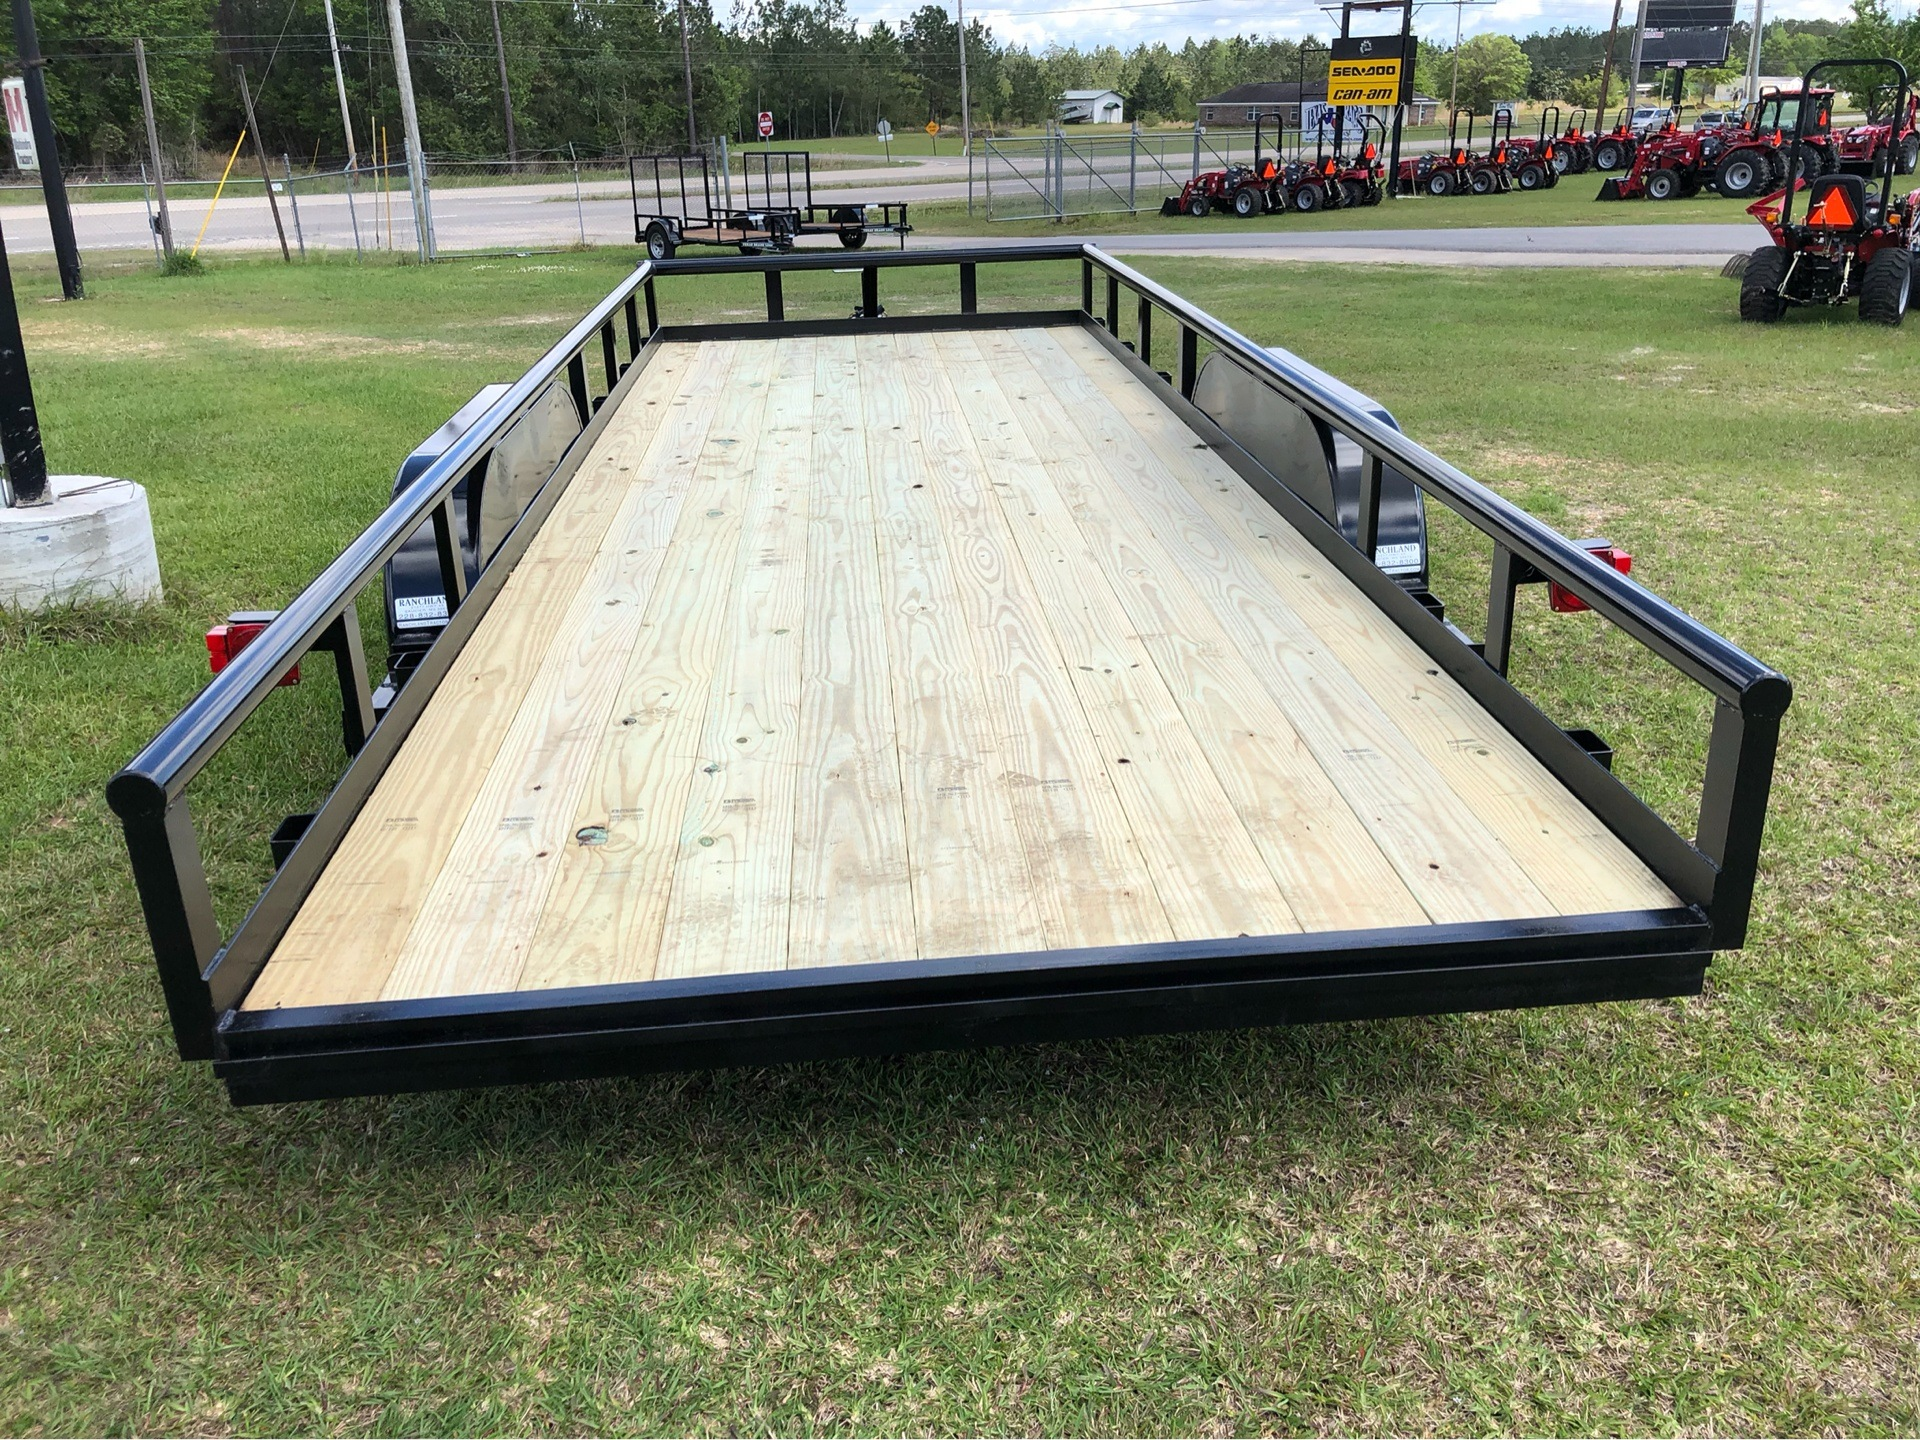 2019 Ranchland Trailers 7x20 Big Pipe, 10K, SIR, Brakes in Saucier, Mississippi - Photo 7